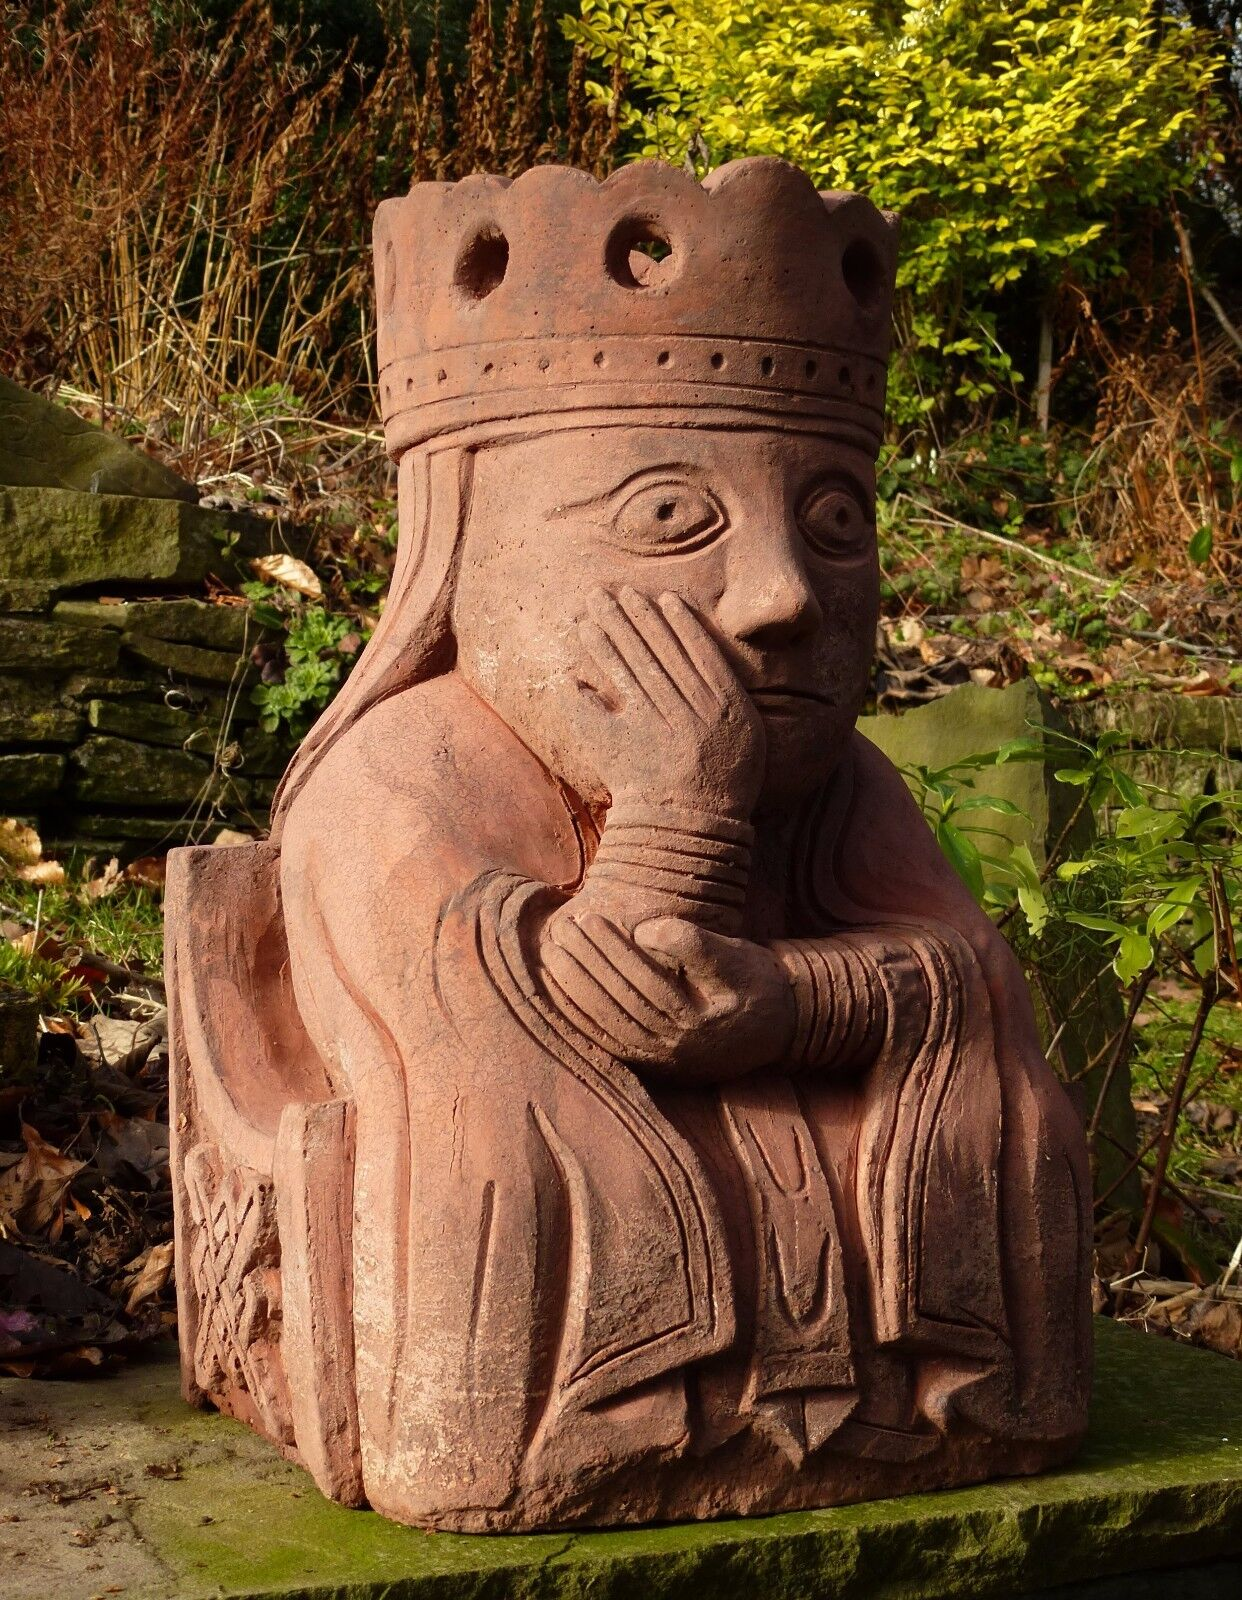 Giant Queen Lewis chess piece